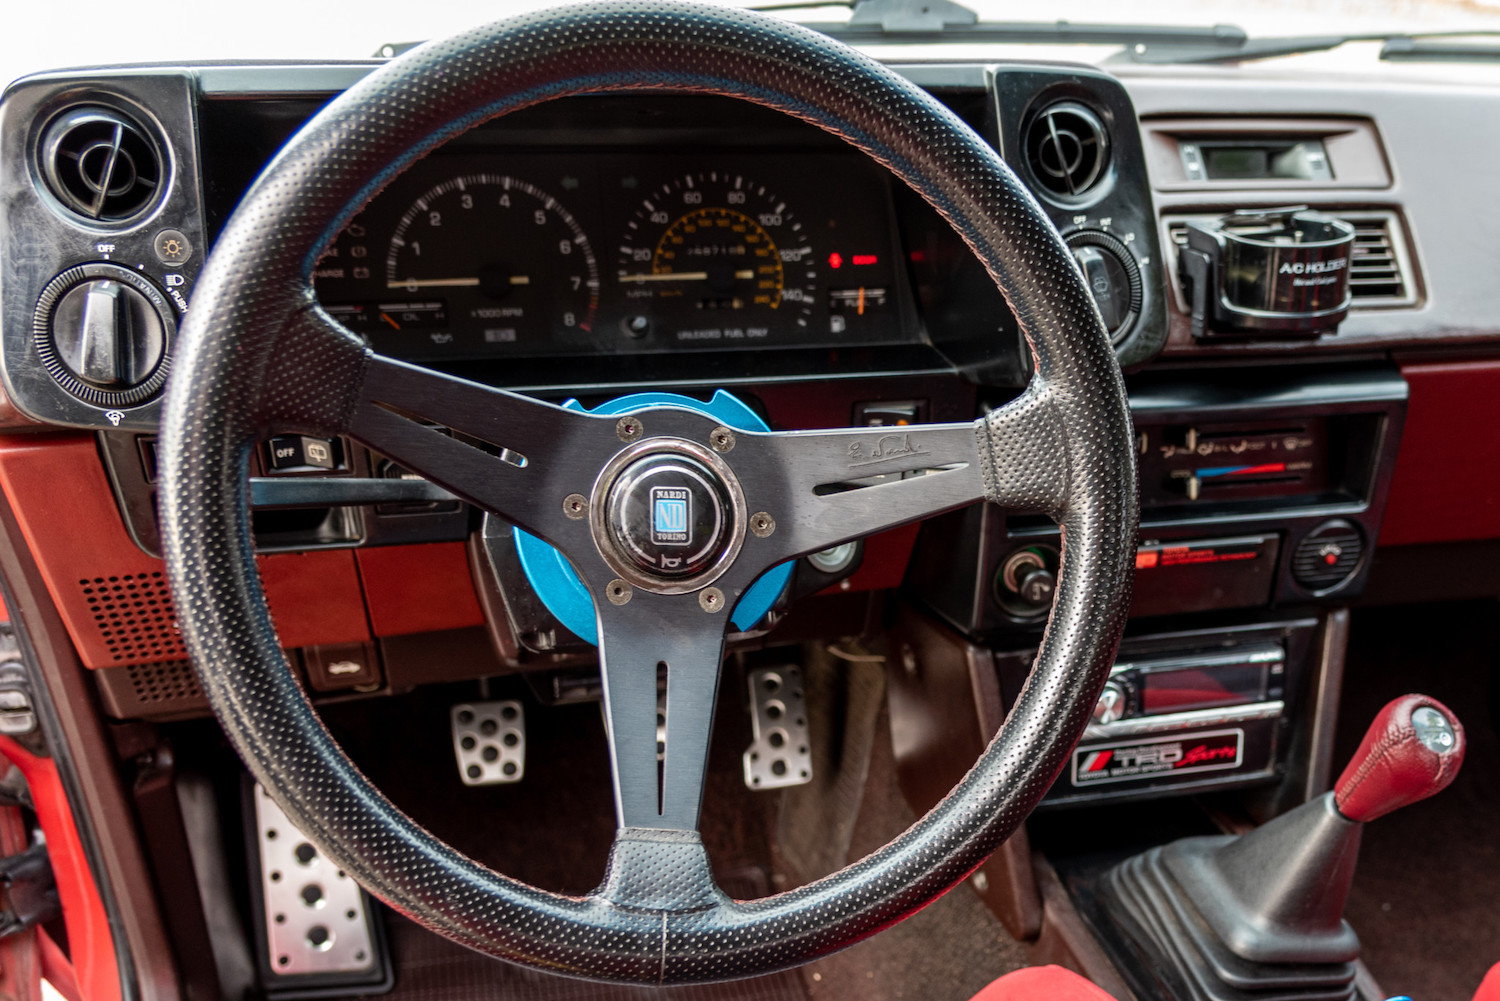 nardi wheel close-up and front dash